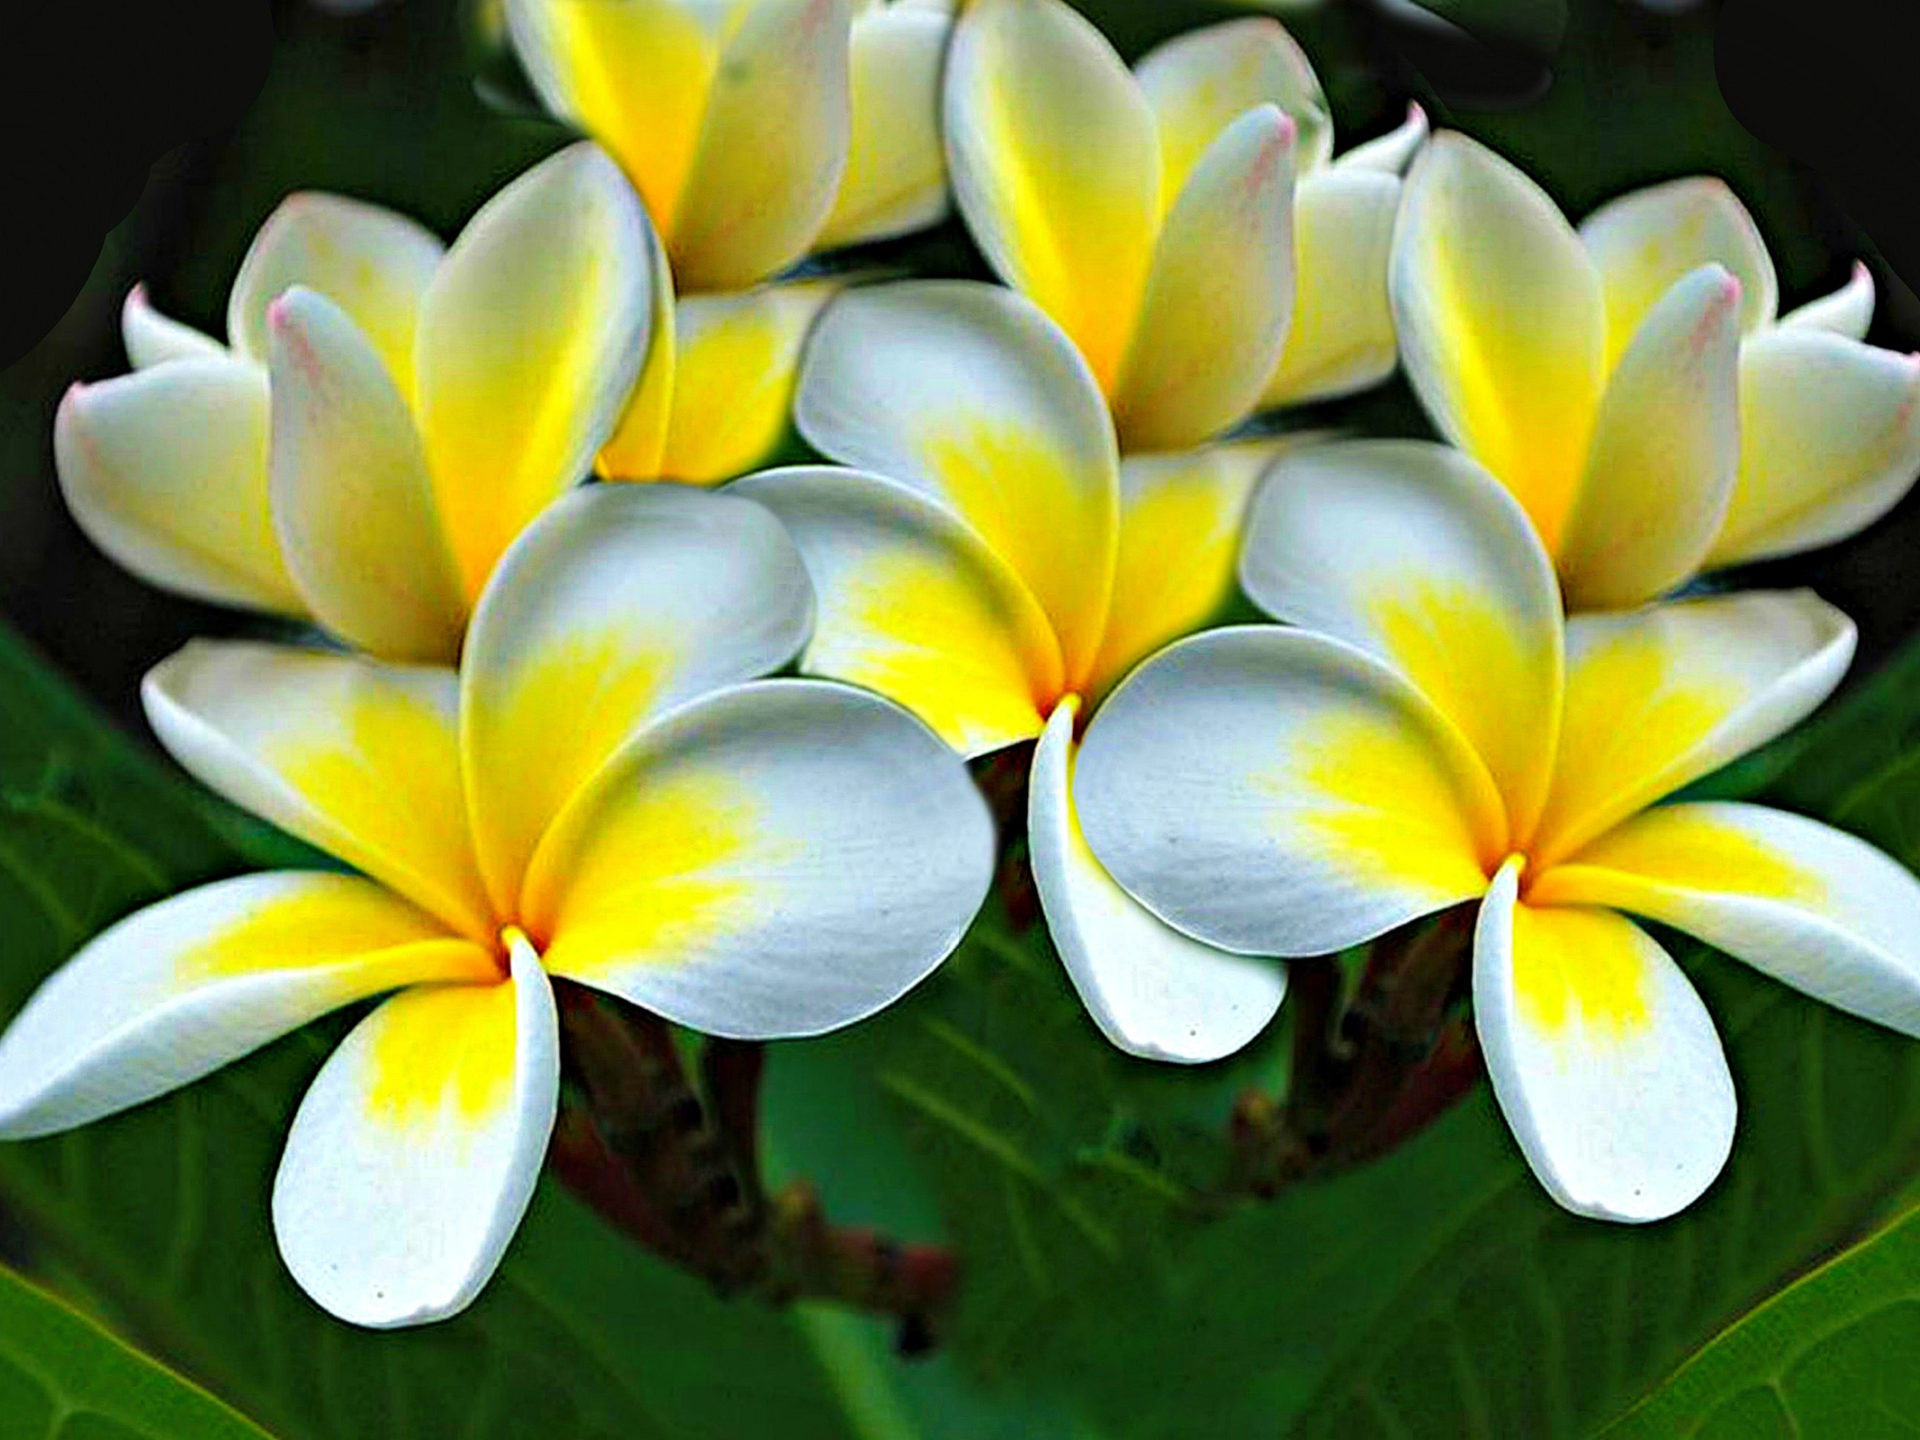 Pink Apple Wallpaper Iphone Plumeria Flowers Yellow White Hd Wallpaper 1571